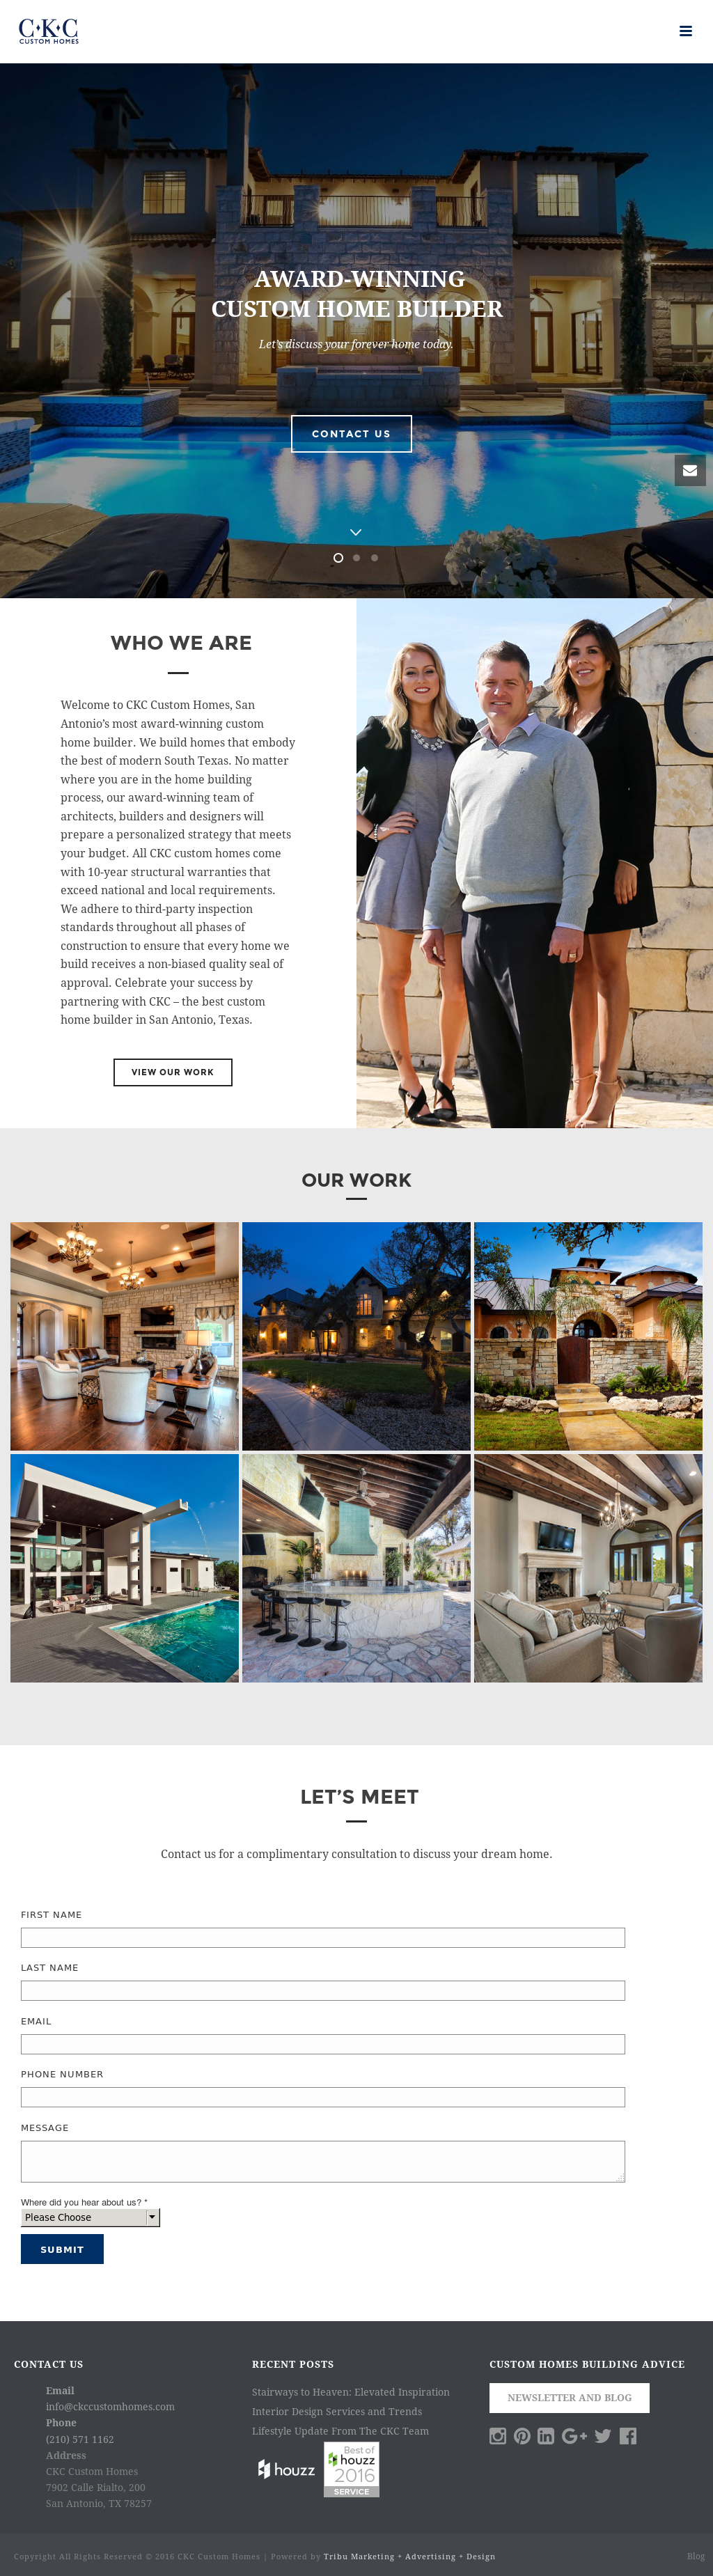 CKC Custom Homes Competitors, Revenue and Employees - Owler Company